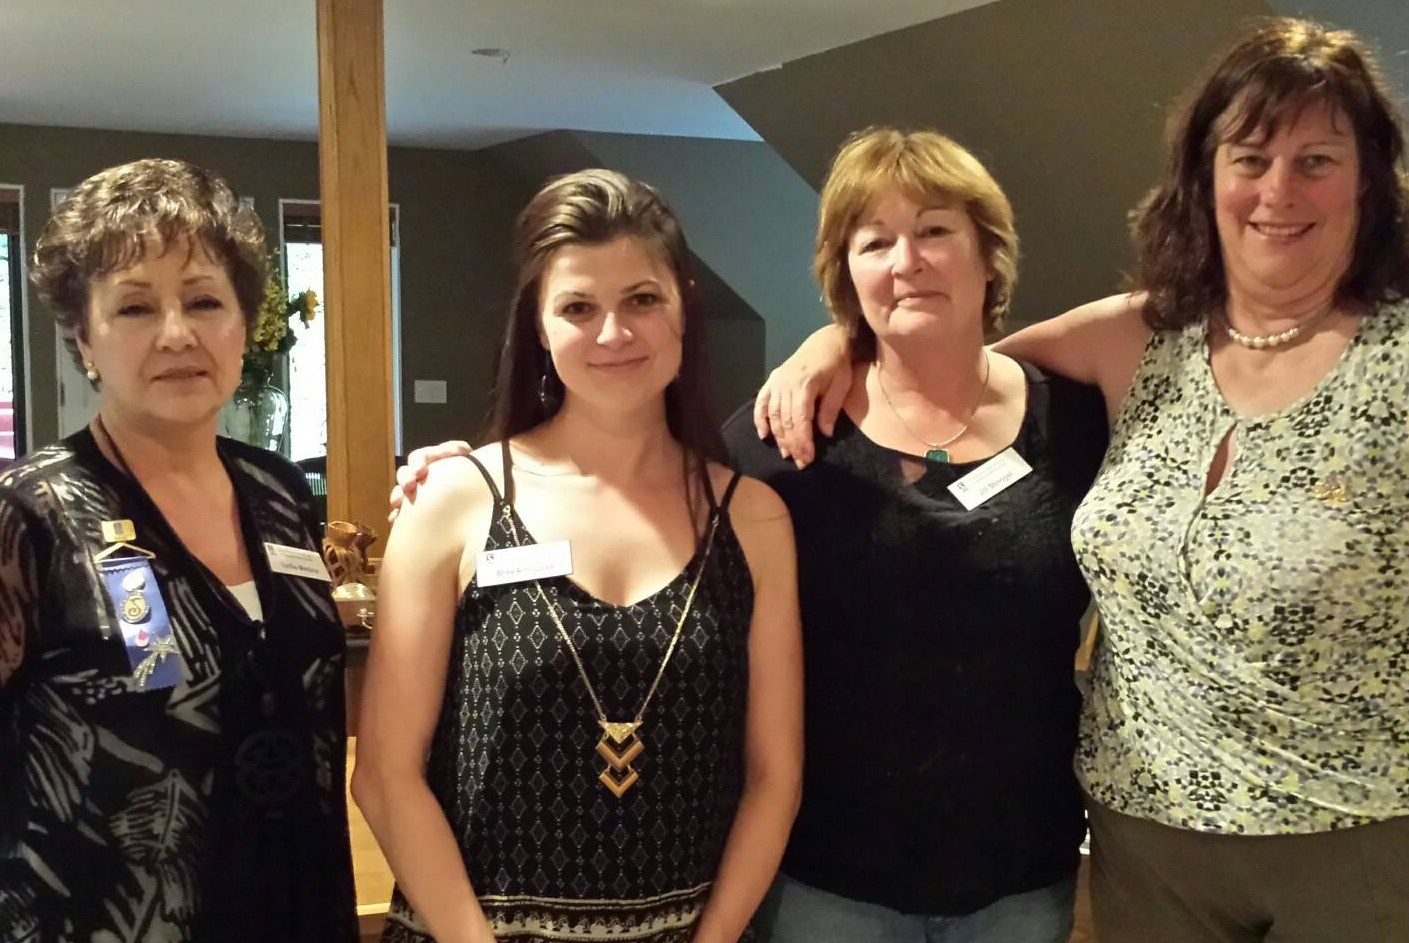 Left to right, Lydia, Bree, Jill and Jane